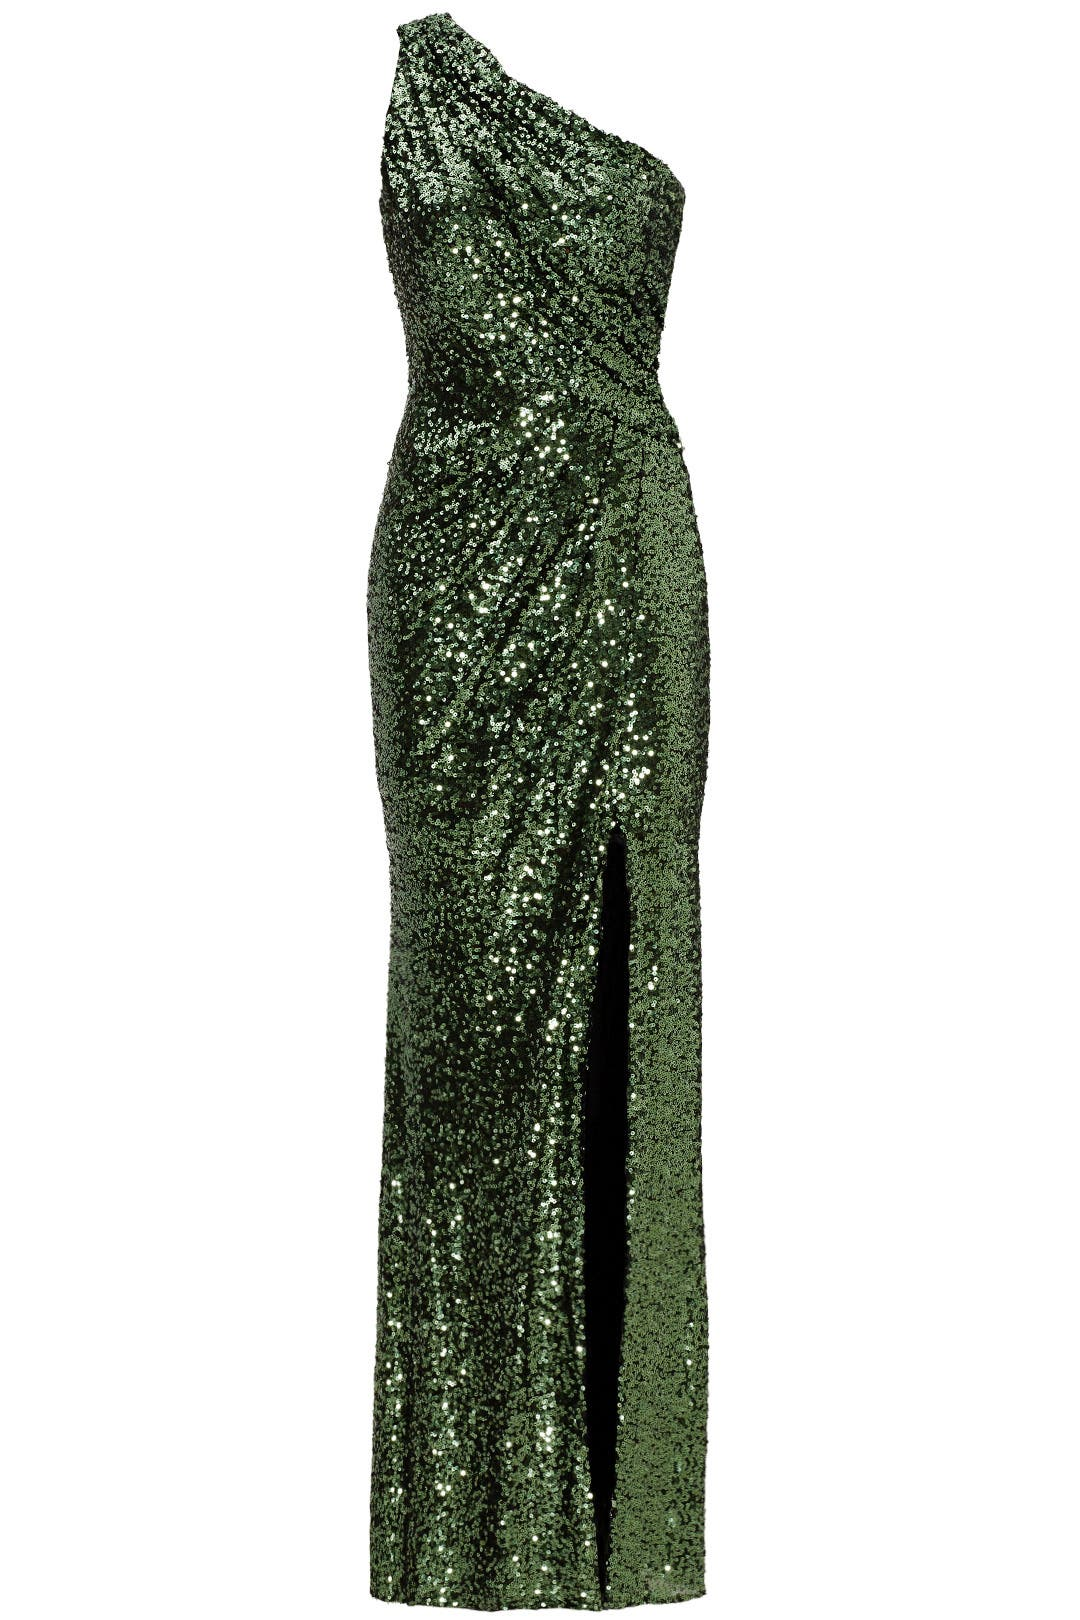 Green Constellation Gown by Badgley Mischka for $100 | Rent the Runway